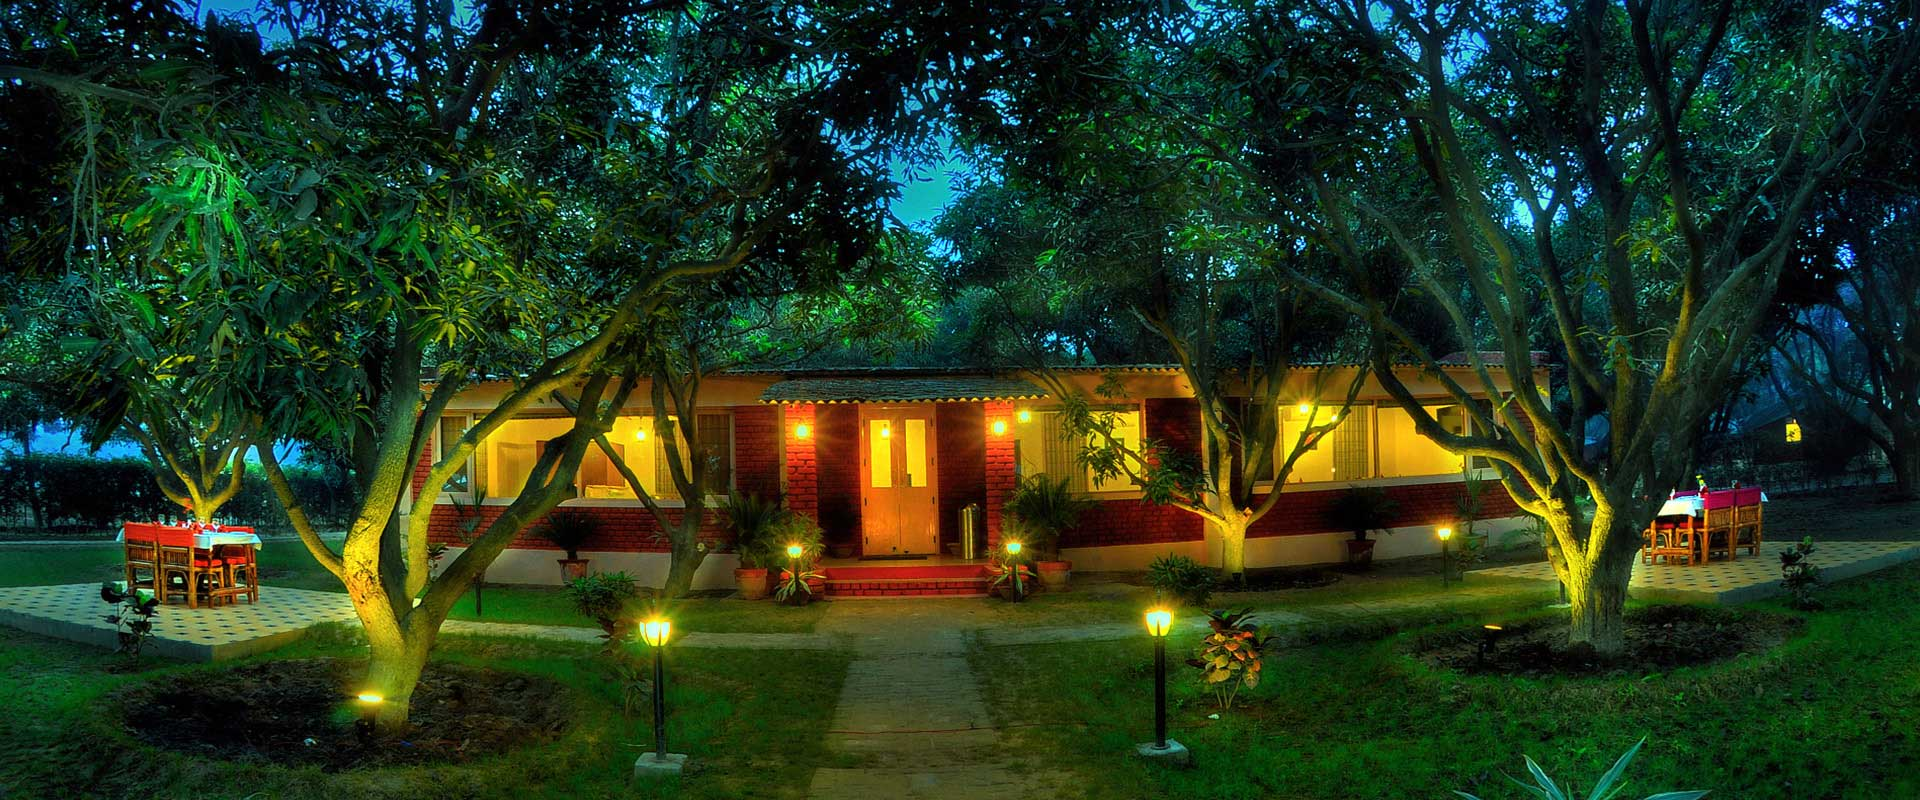 baghaan resort close to delhi